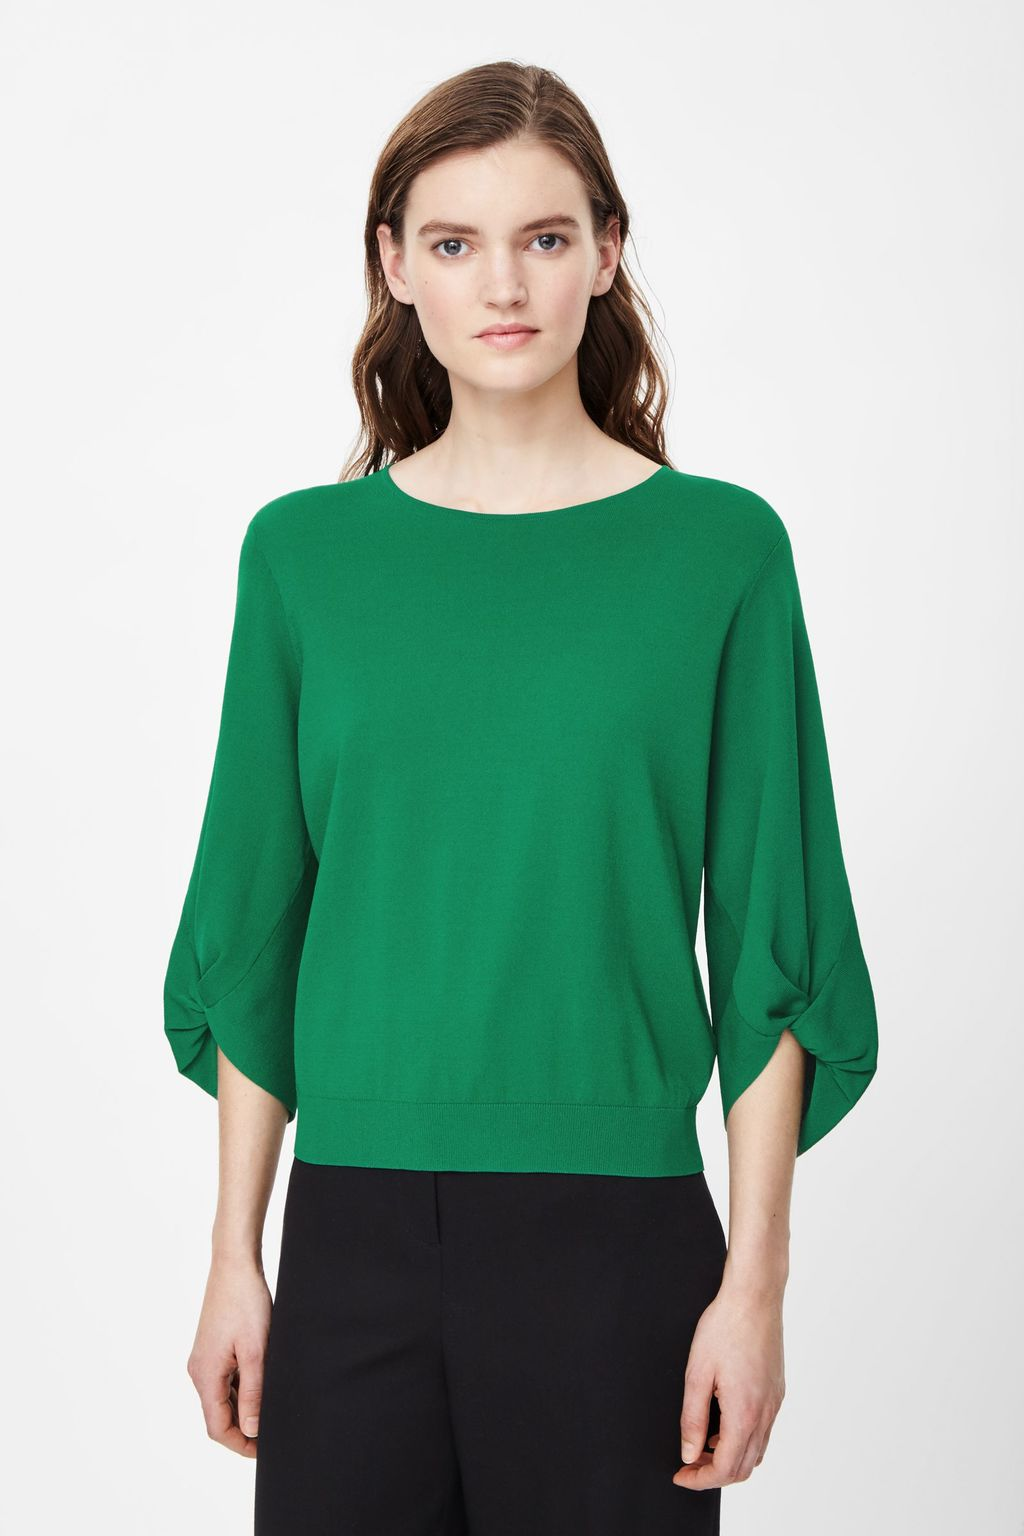 Gathered Sleeve Knit Top - neckline: round neck; pattern: plain; sleeve style: balloon; predominant colour: emerald green; occasions: casual, creative work; length: standard; style: top; fit: body skimming; sleeve length: 3/4 length; texture group: knits/crochet; pattern type: knitted - fine stitch; fibres: viscose/rayon - mix; season: s/s 2015; wardrobe: highlight